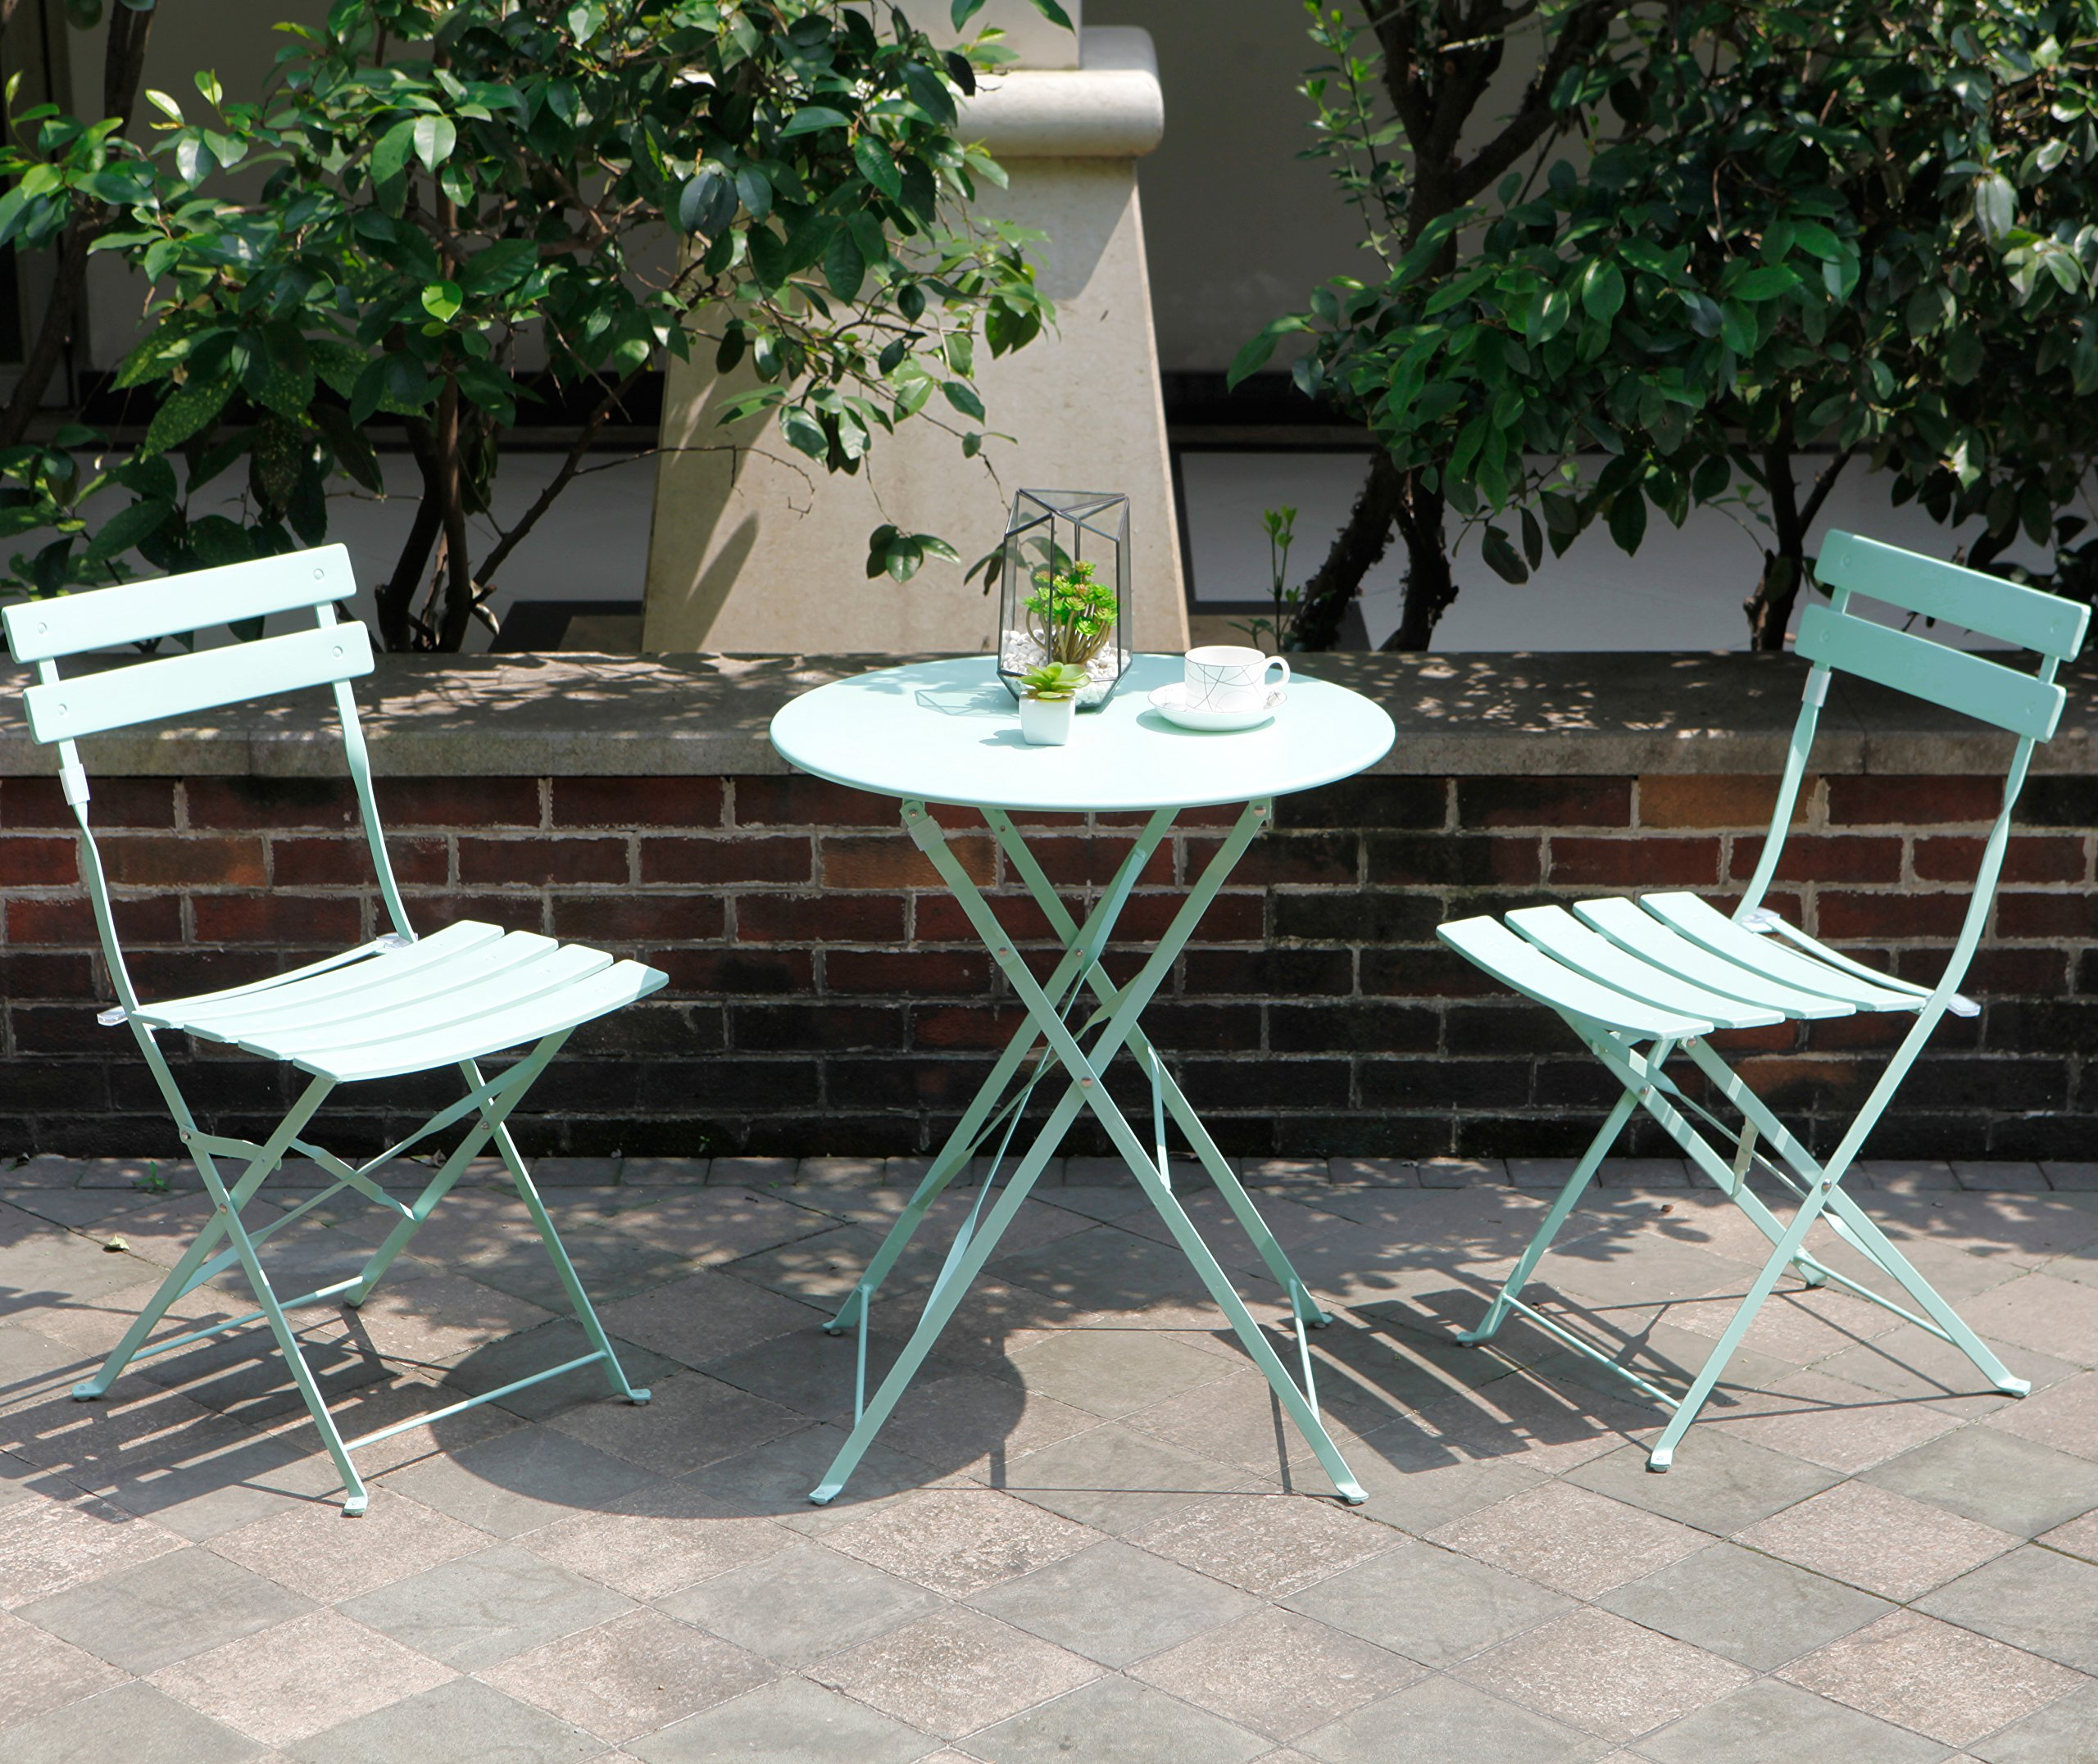 Grand Patio Premium Steel Bistro Set Folding Outdoor Furniture Sets 3 Piece Of Foldable Table And Chairs Macaron Blue In